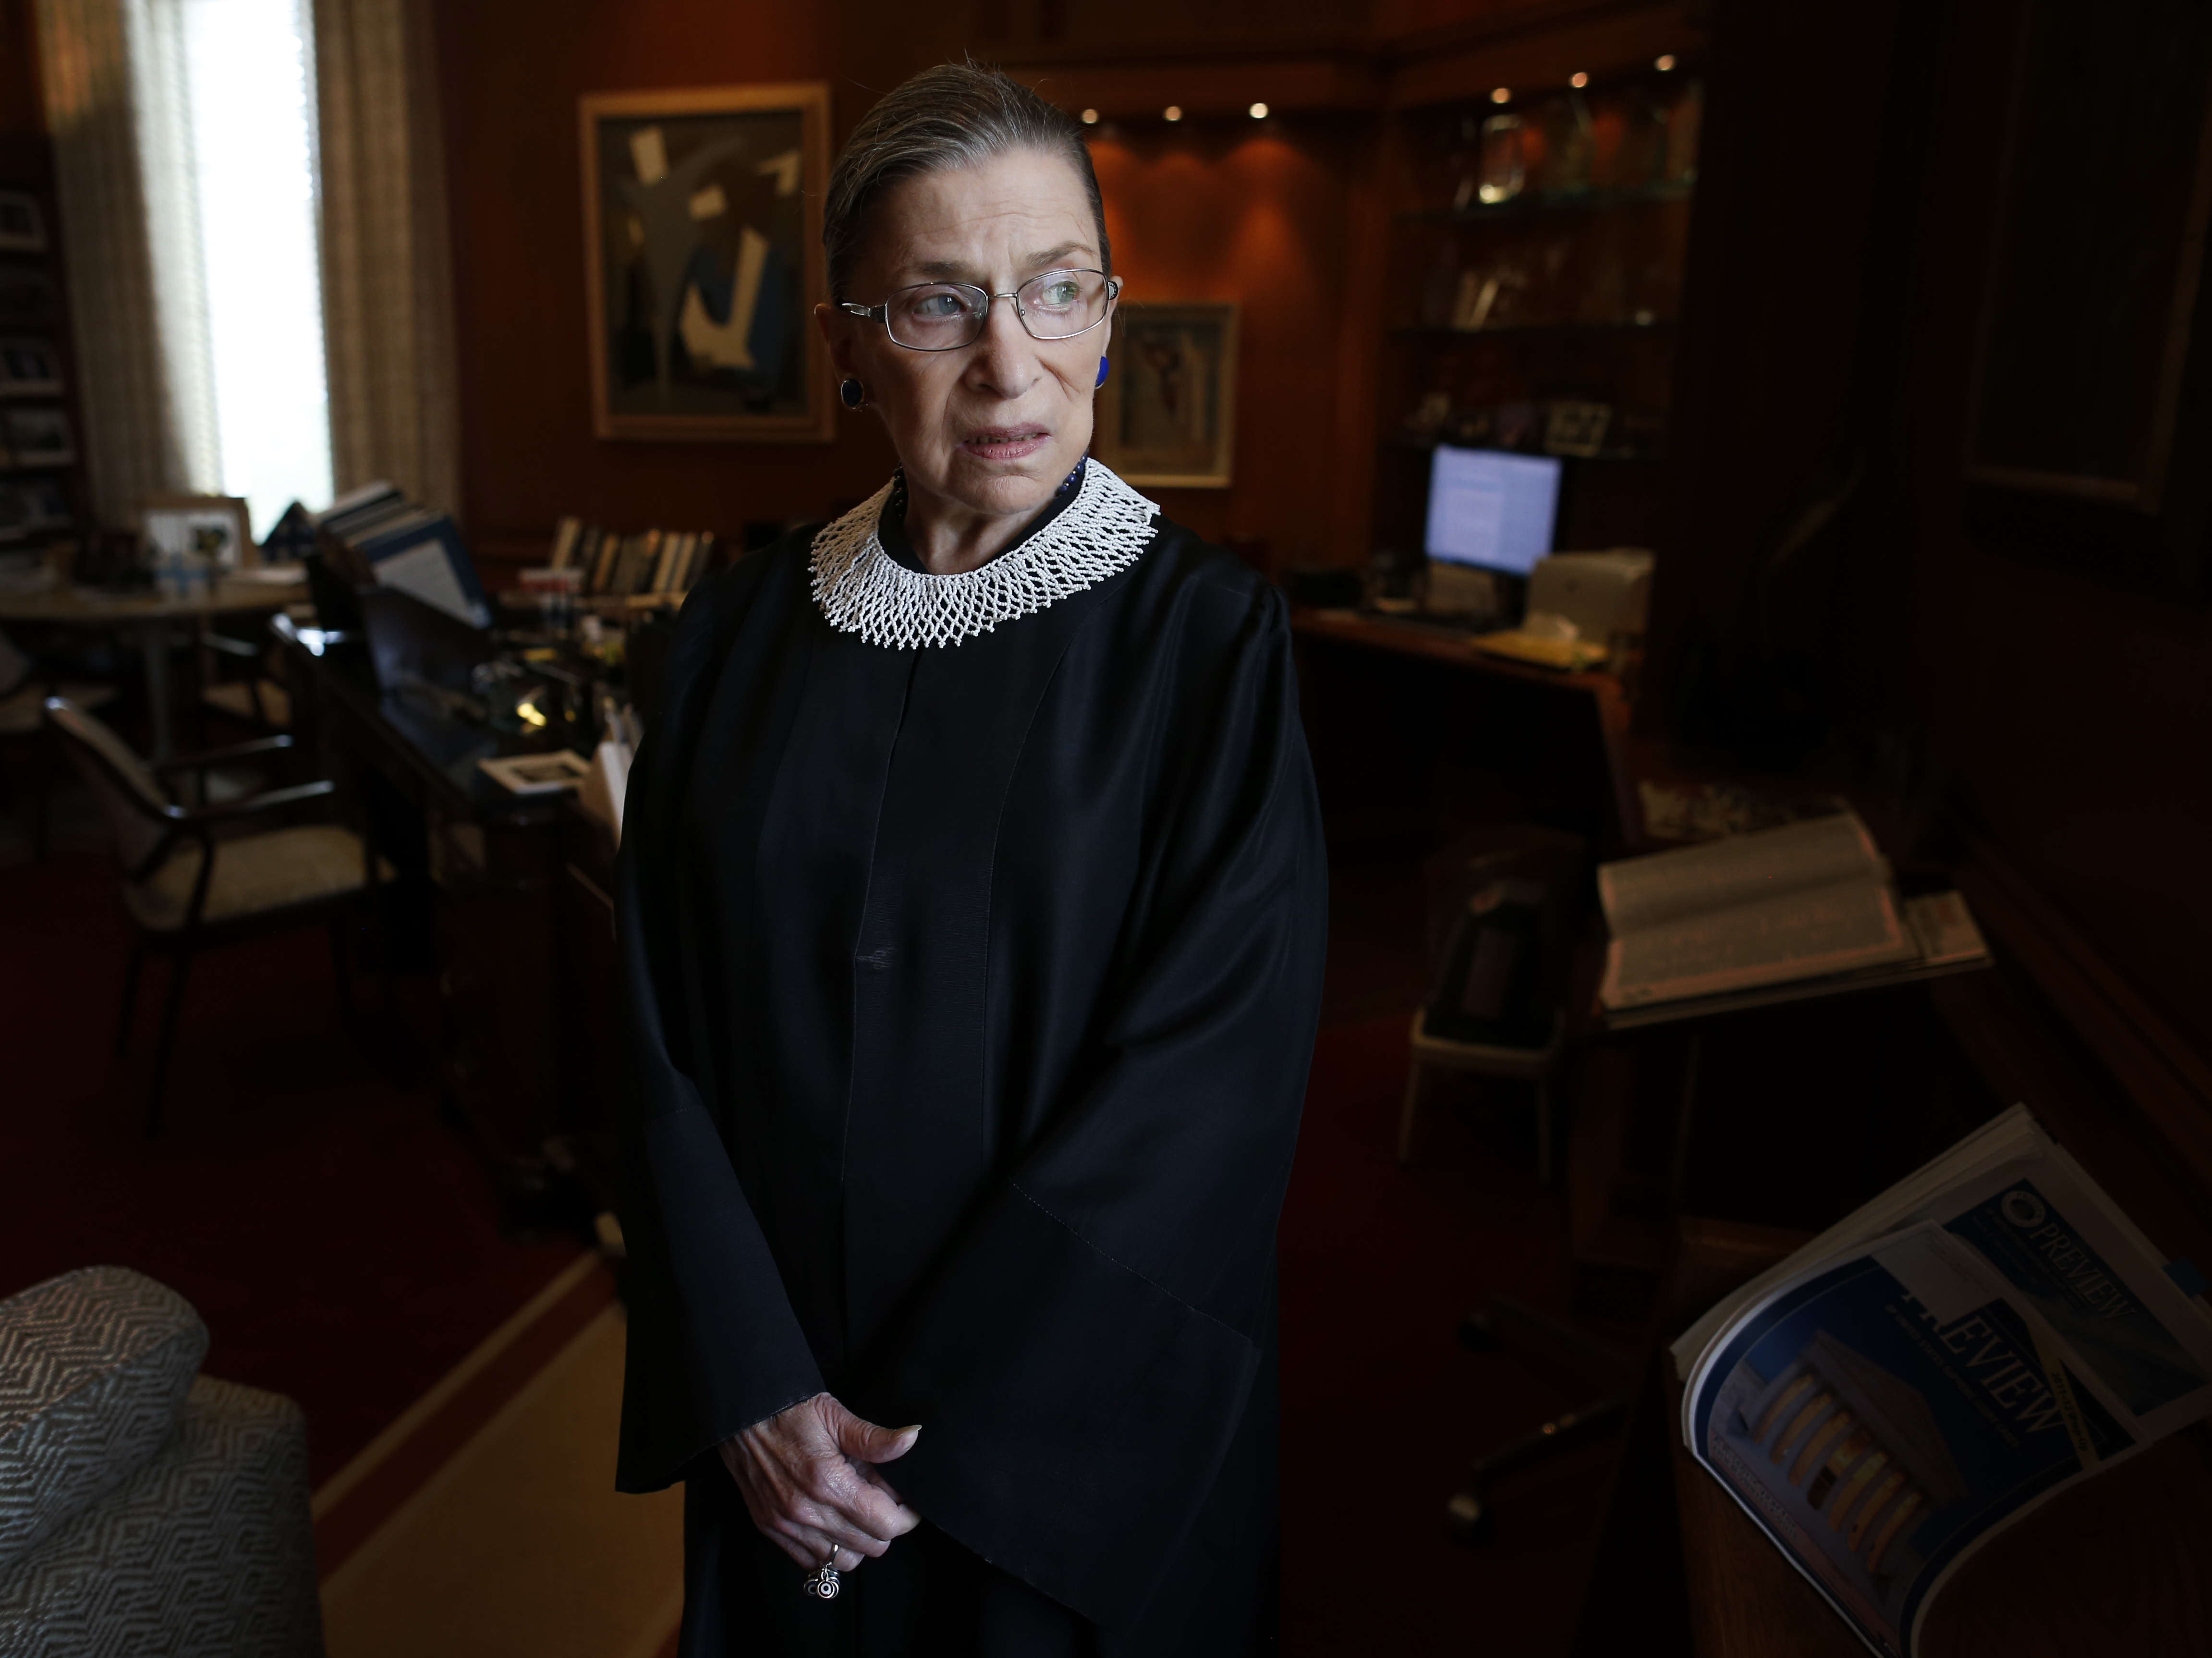 Justice Ruth Bader Ginsburg in her chambers at the Supreme Court on July 24, 2013.